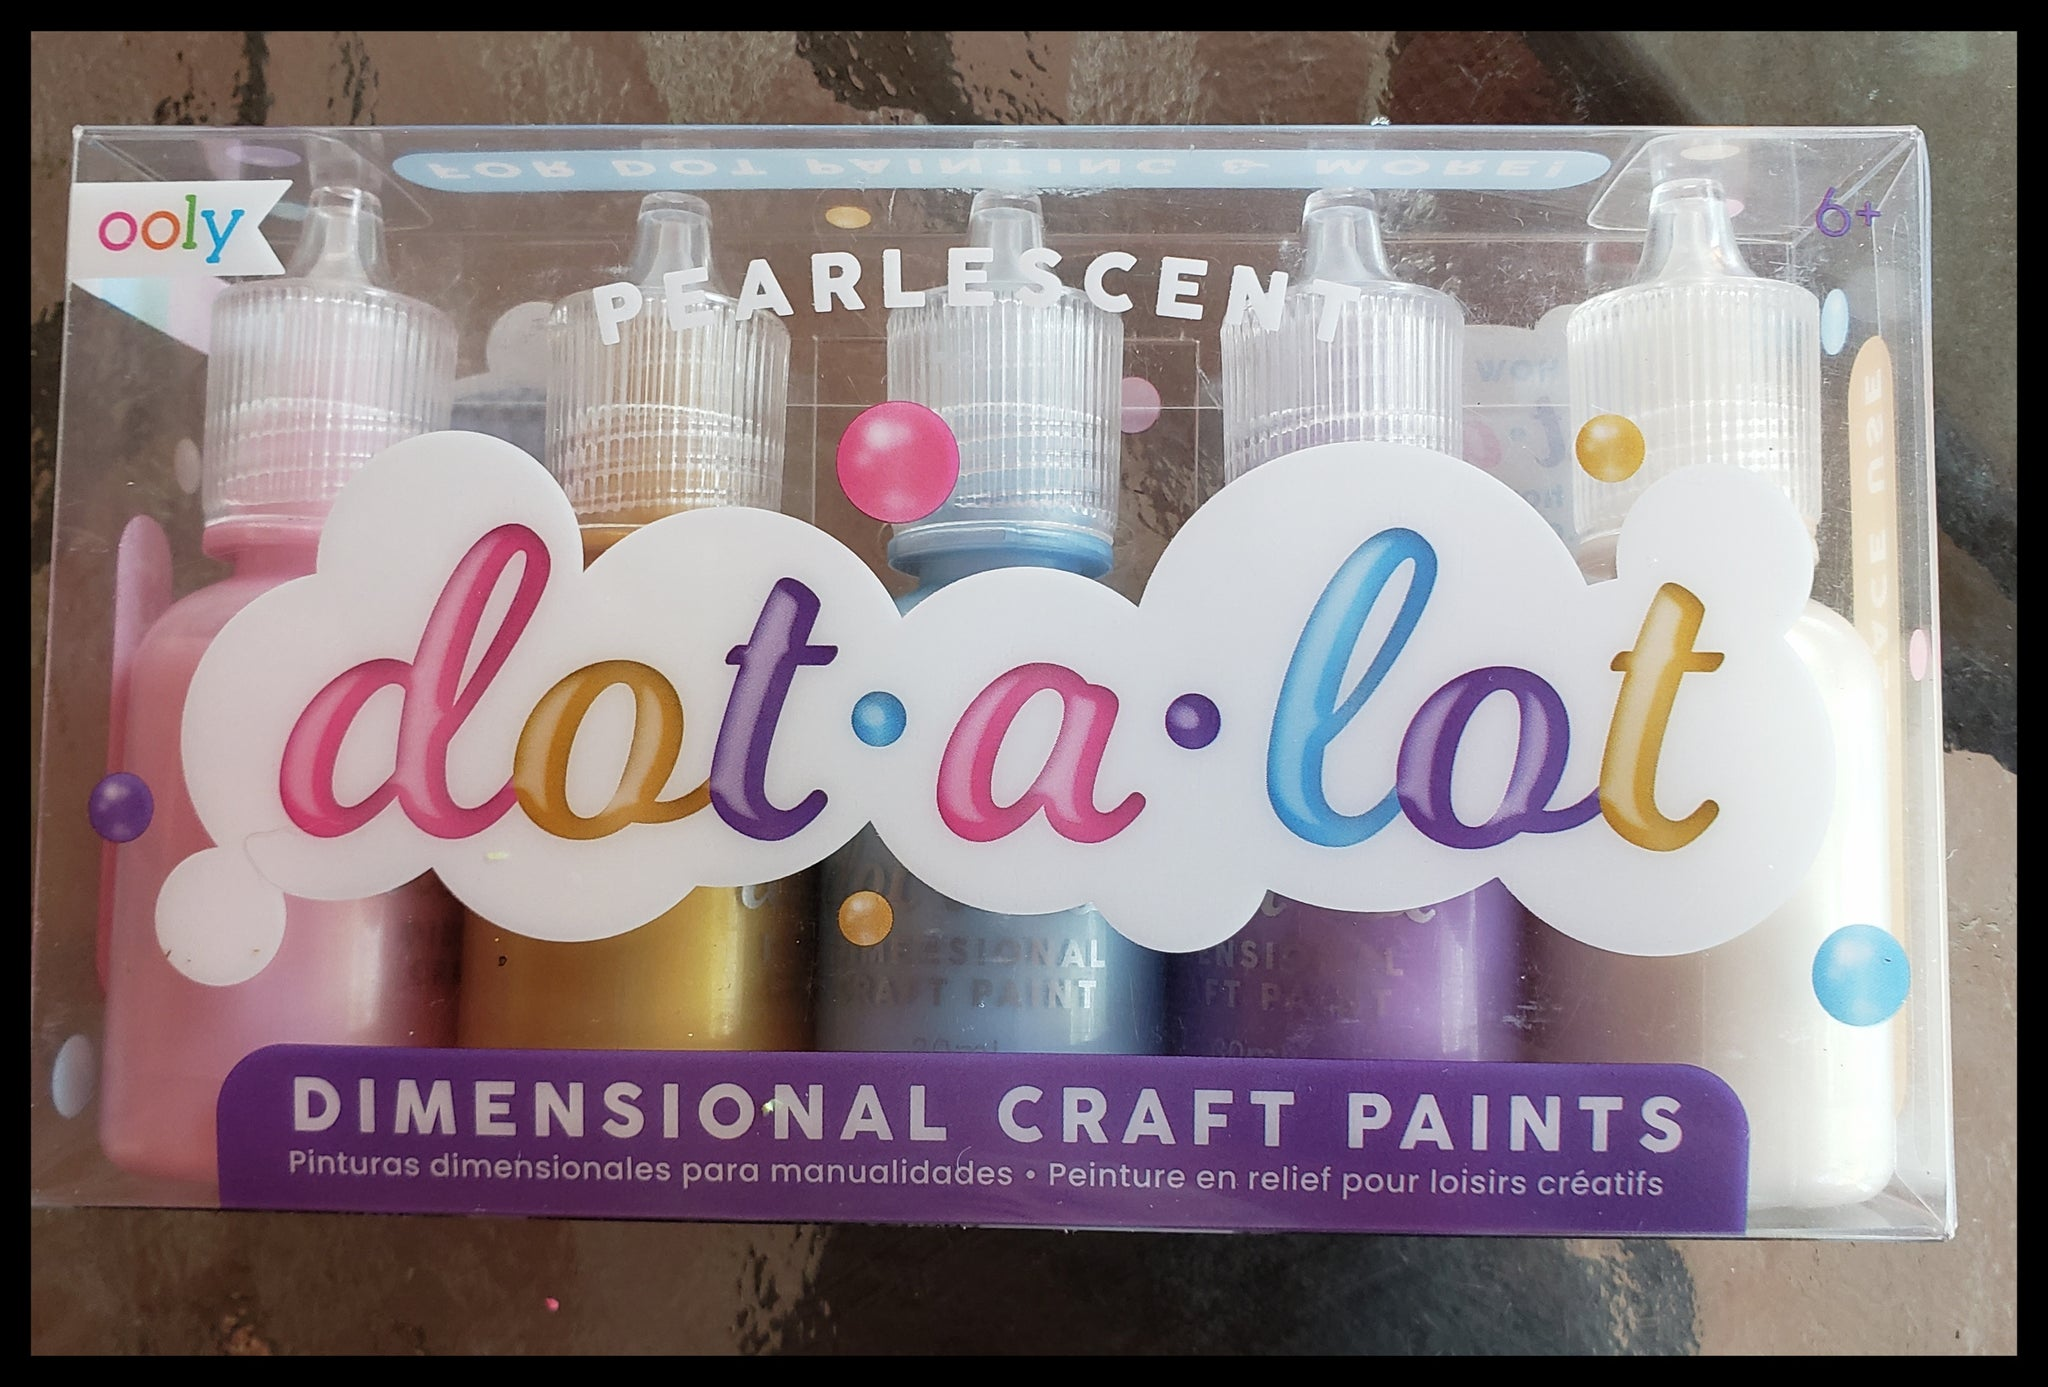 "Dot a lot dimensional craft paints 5 pearlescent colors   Dimensional craft paints  Use on black & white paper, wood, fabric, glass, ceramic & more!  3.5"" x 6 in box ADA The Gilded Page Santa Fe New Mexico"